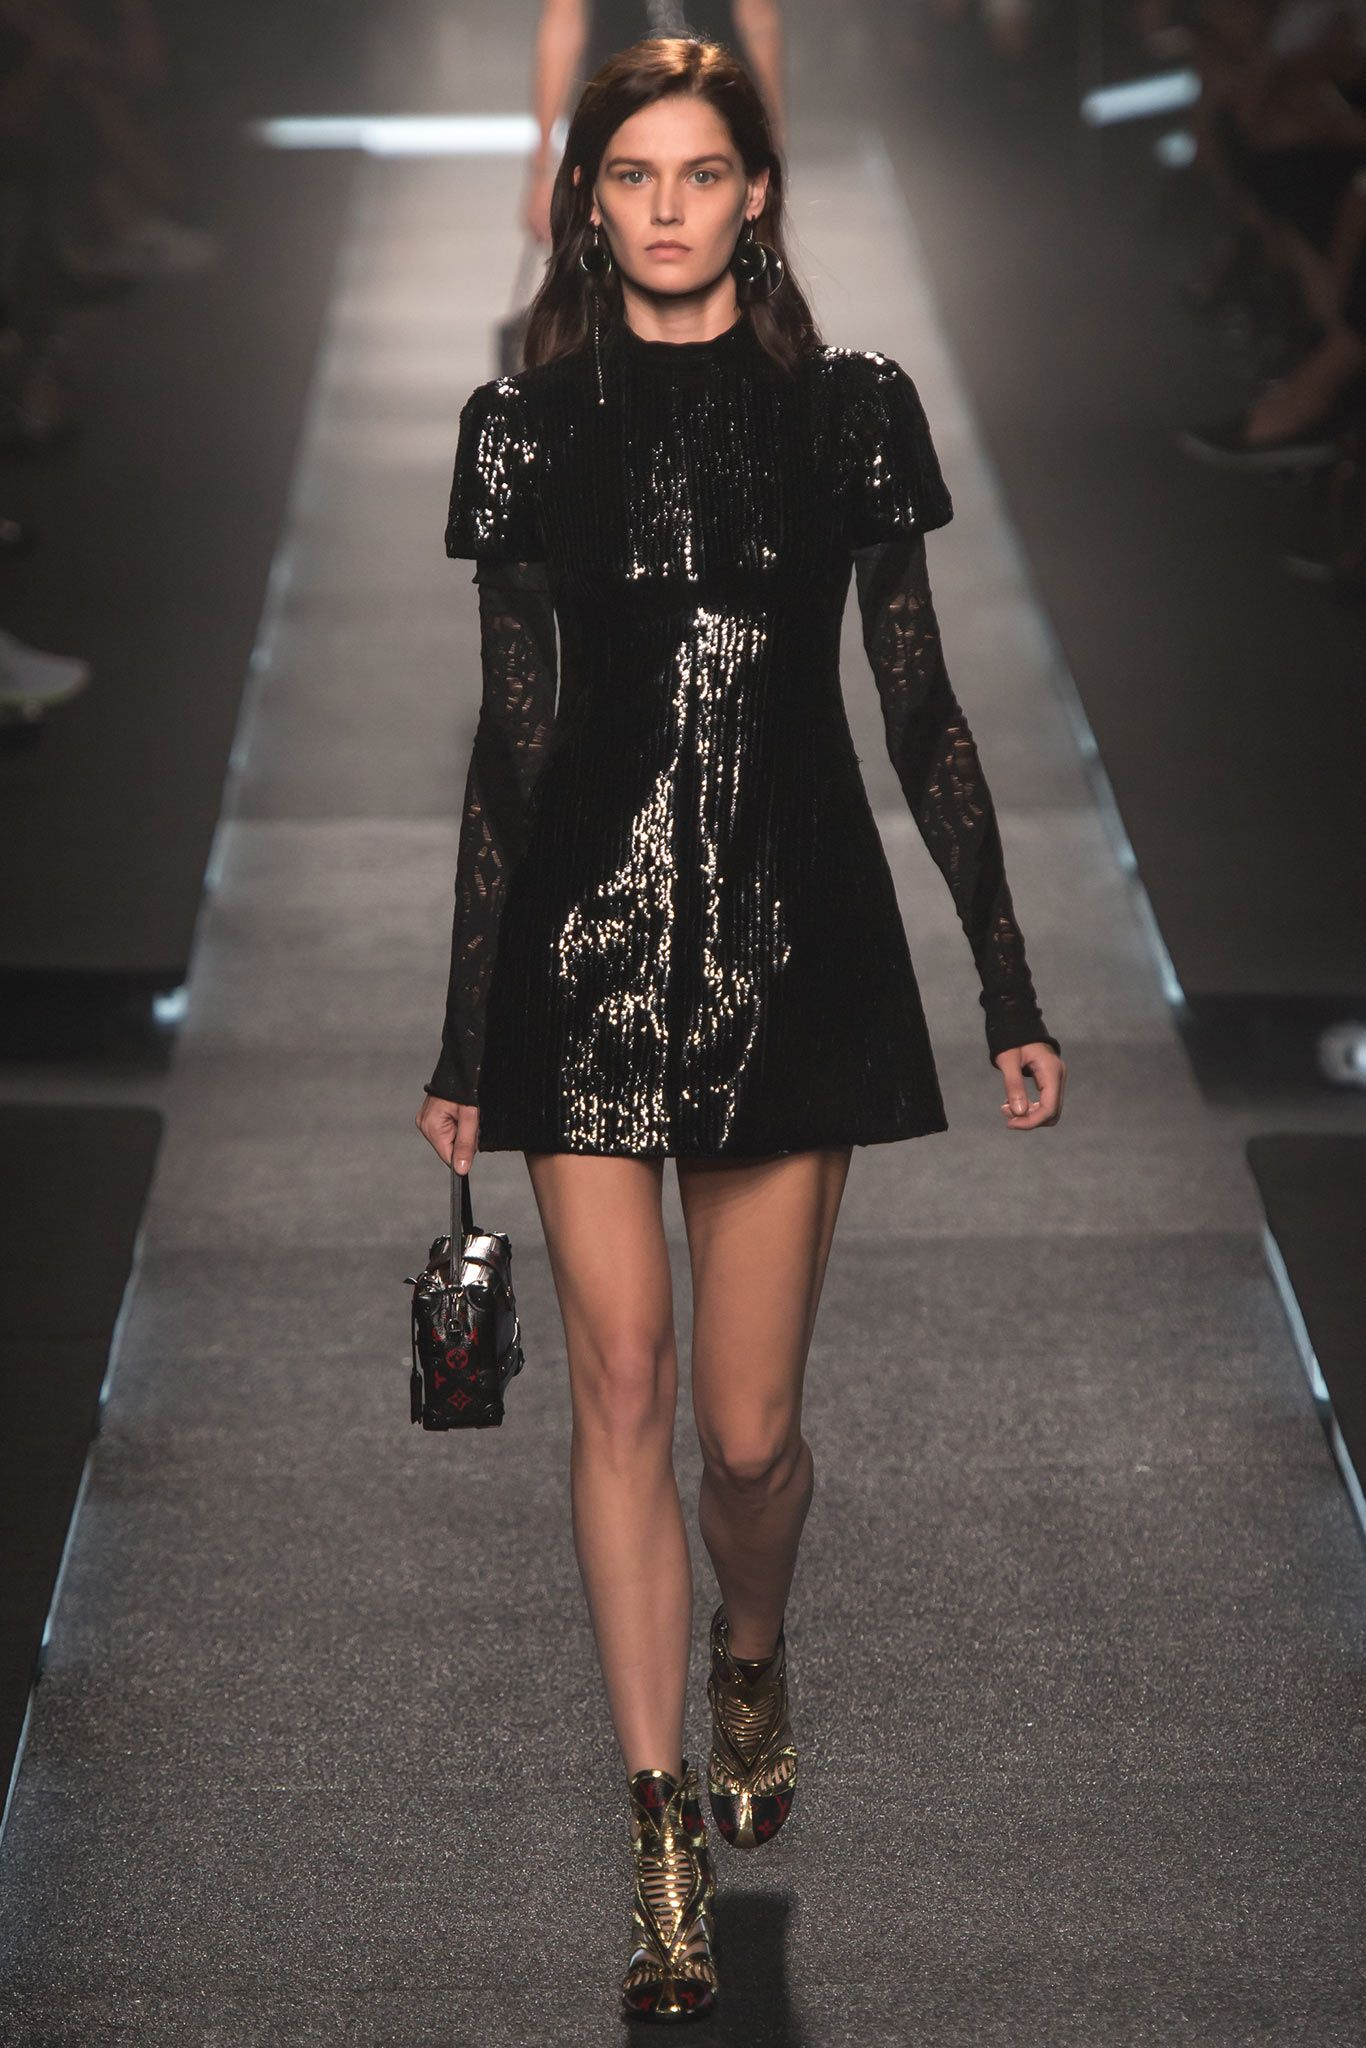 louis vuitton 2015. louis vuitton spring 2015 ready-to-wear - collection gallery look 47